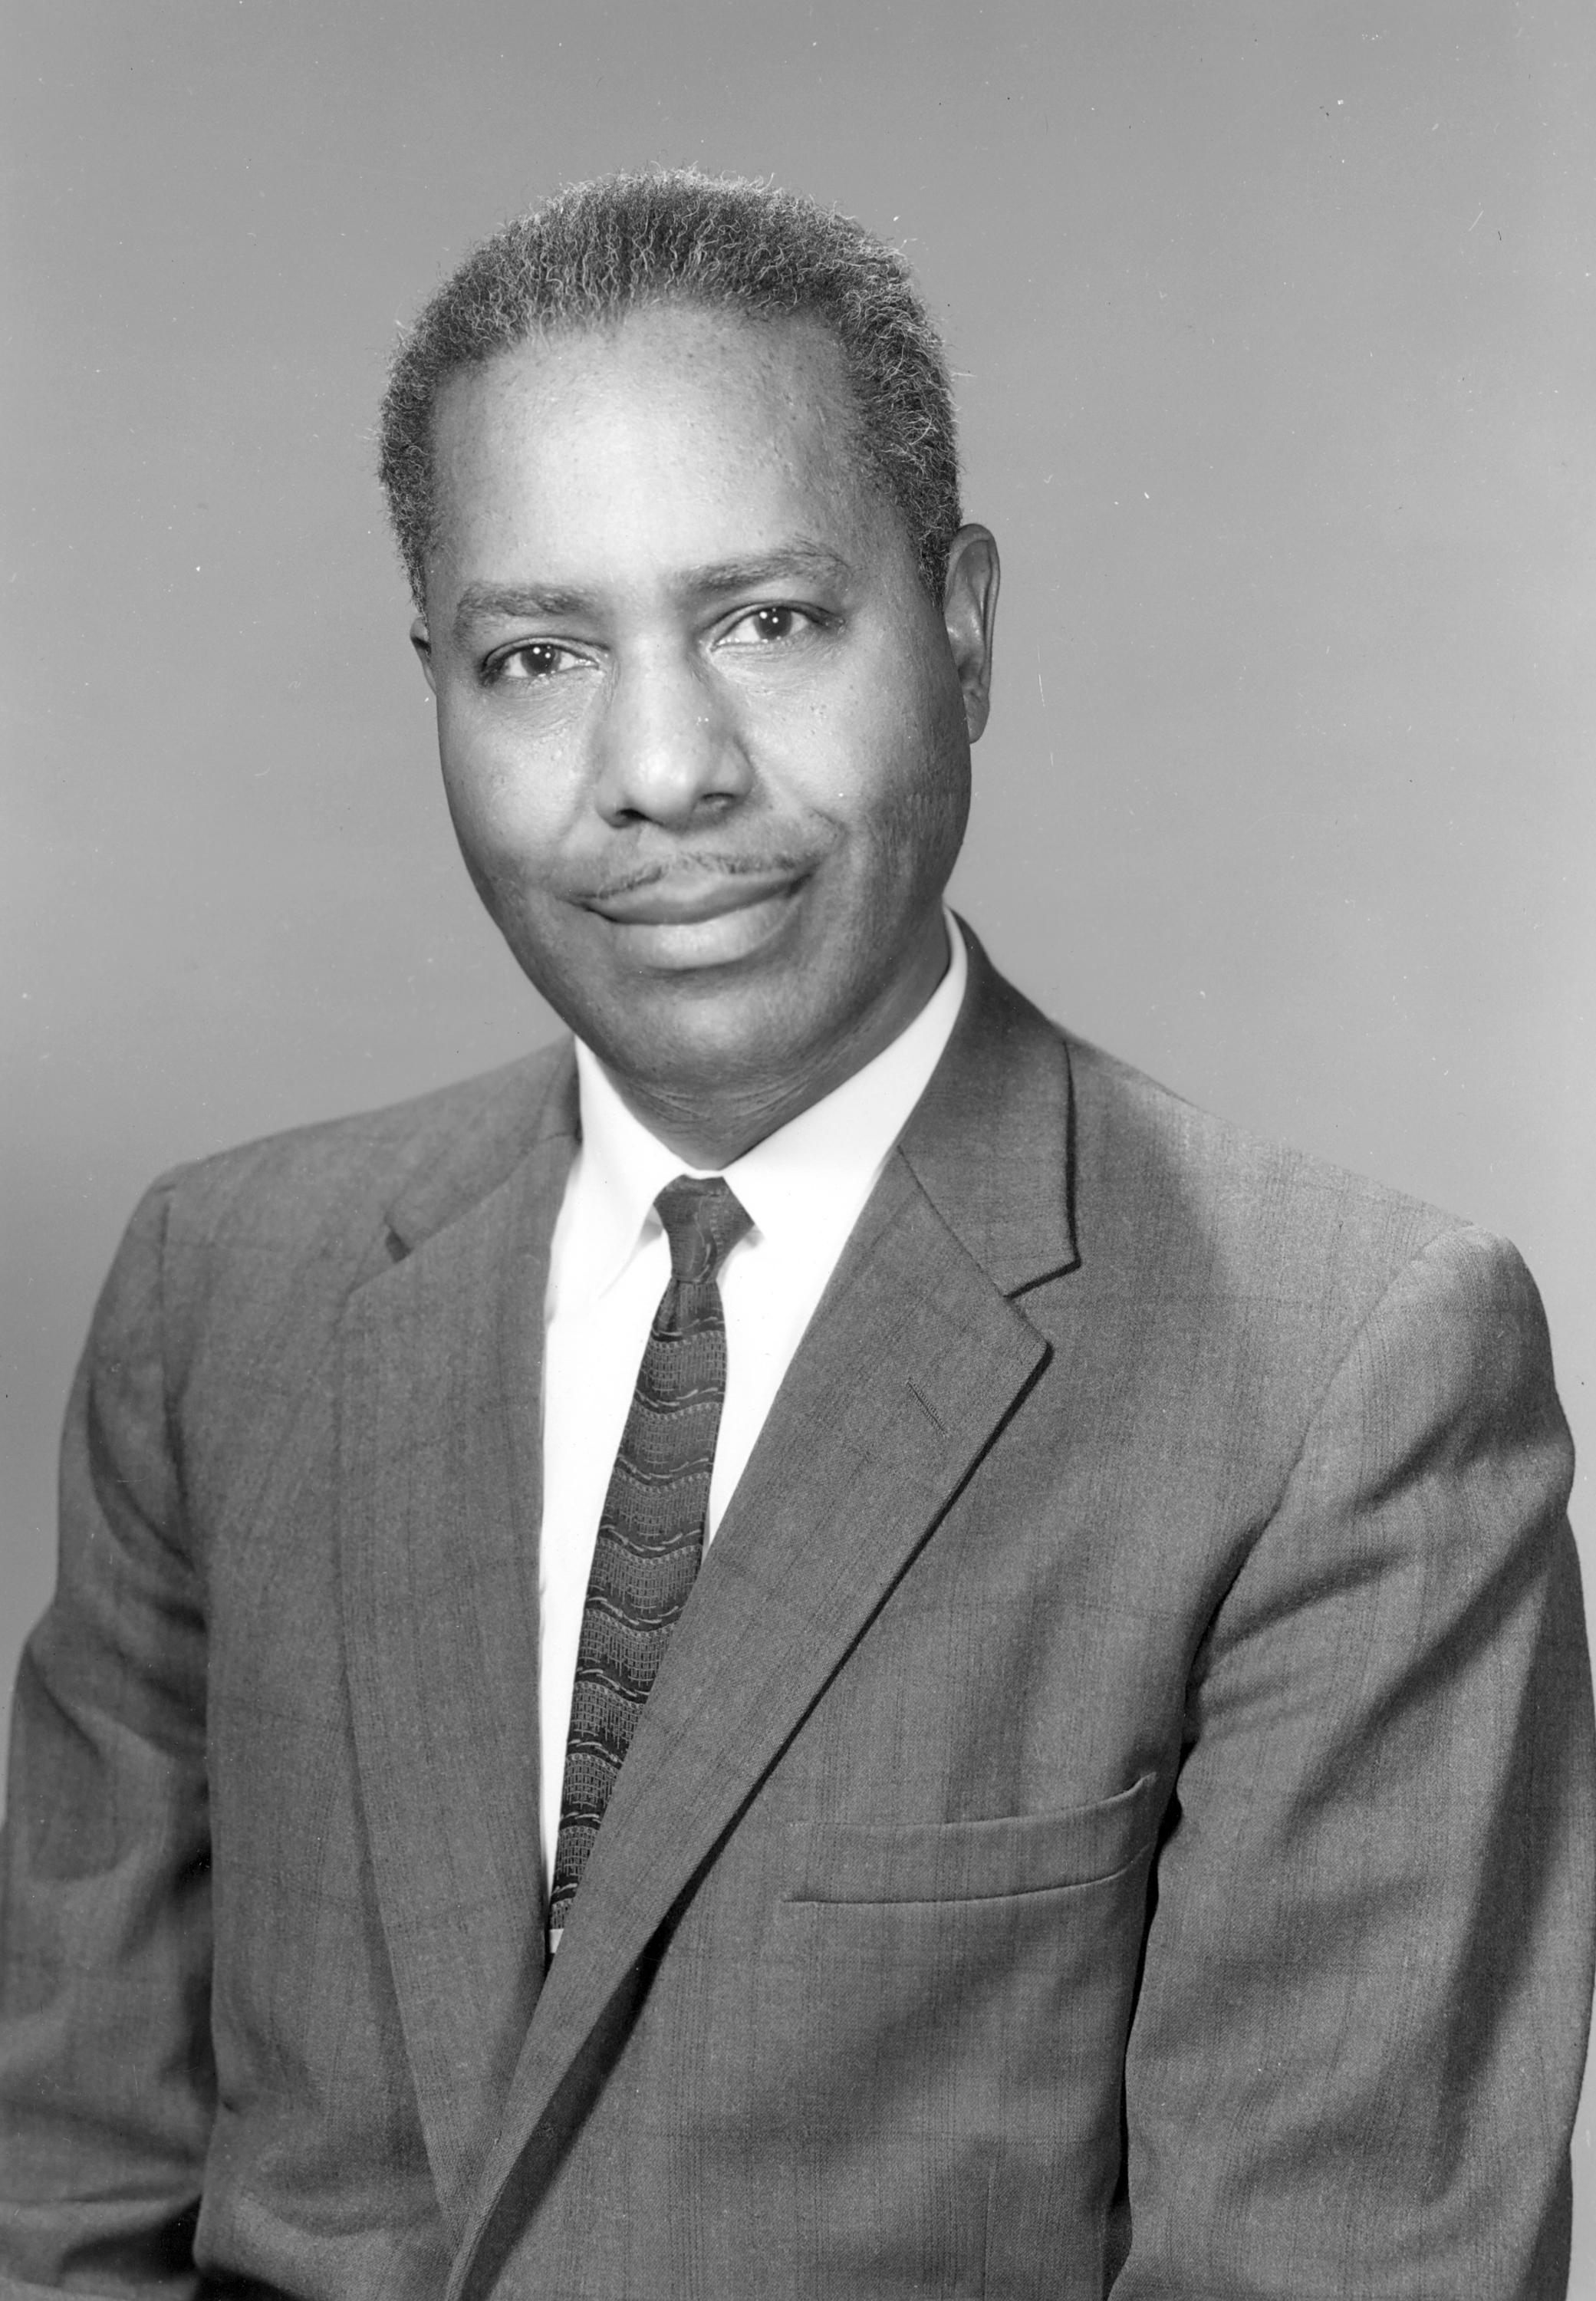 Dr. Walter S. McAfee